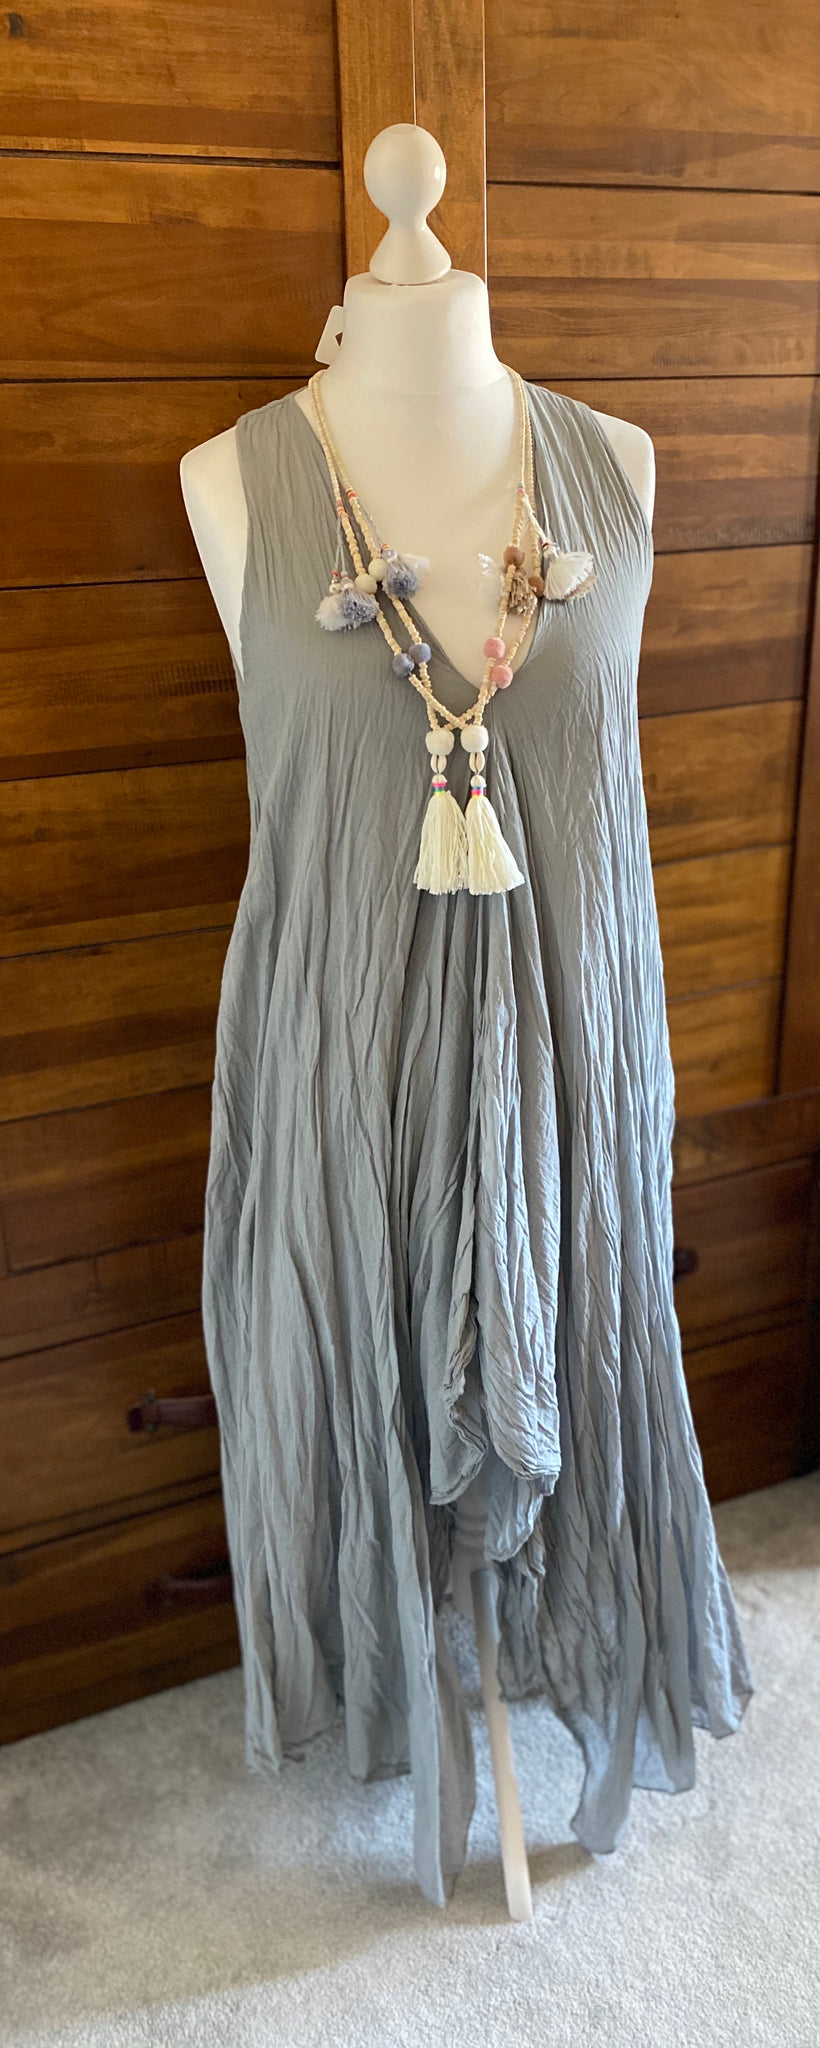 Grey Double Layer V Neck Dress with a Hanky Hem